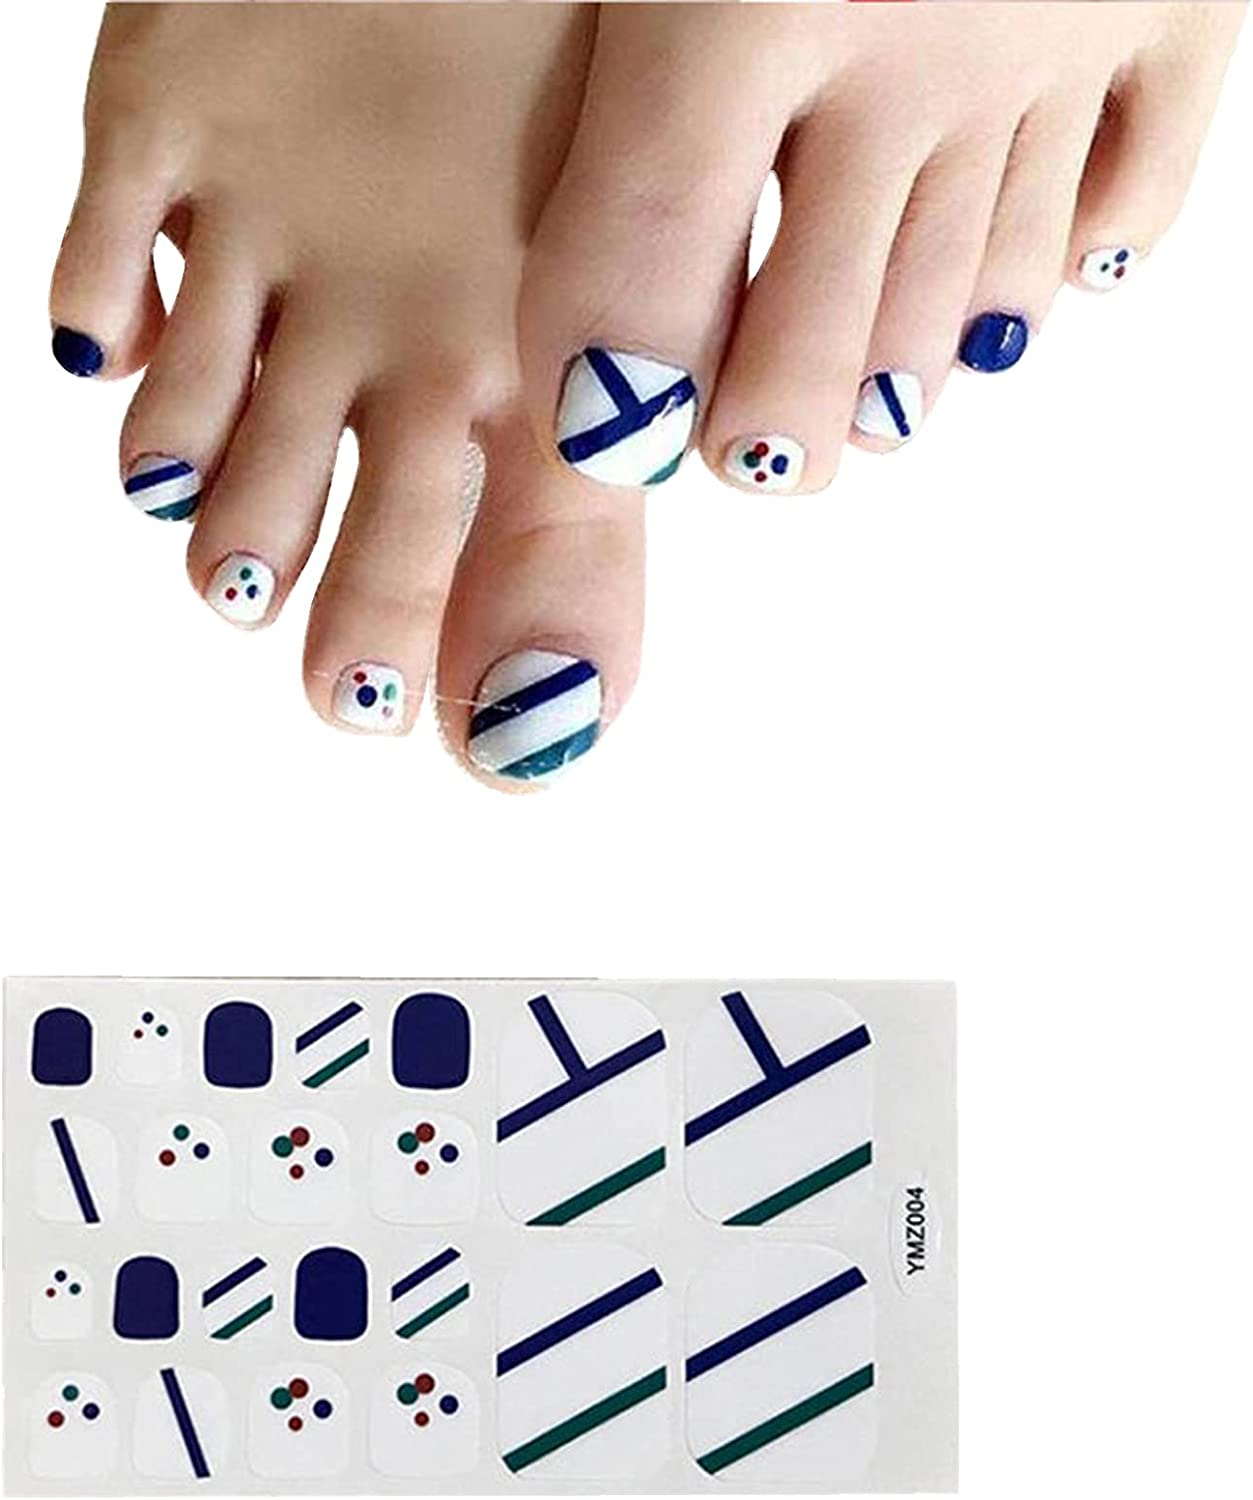 Foot Nail Stickers Denver Mall for Toe Ranking TOP13 Women Waterproof Na